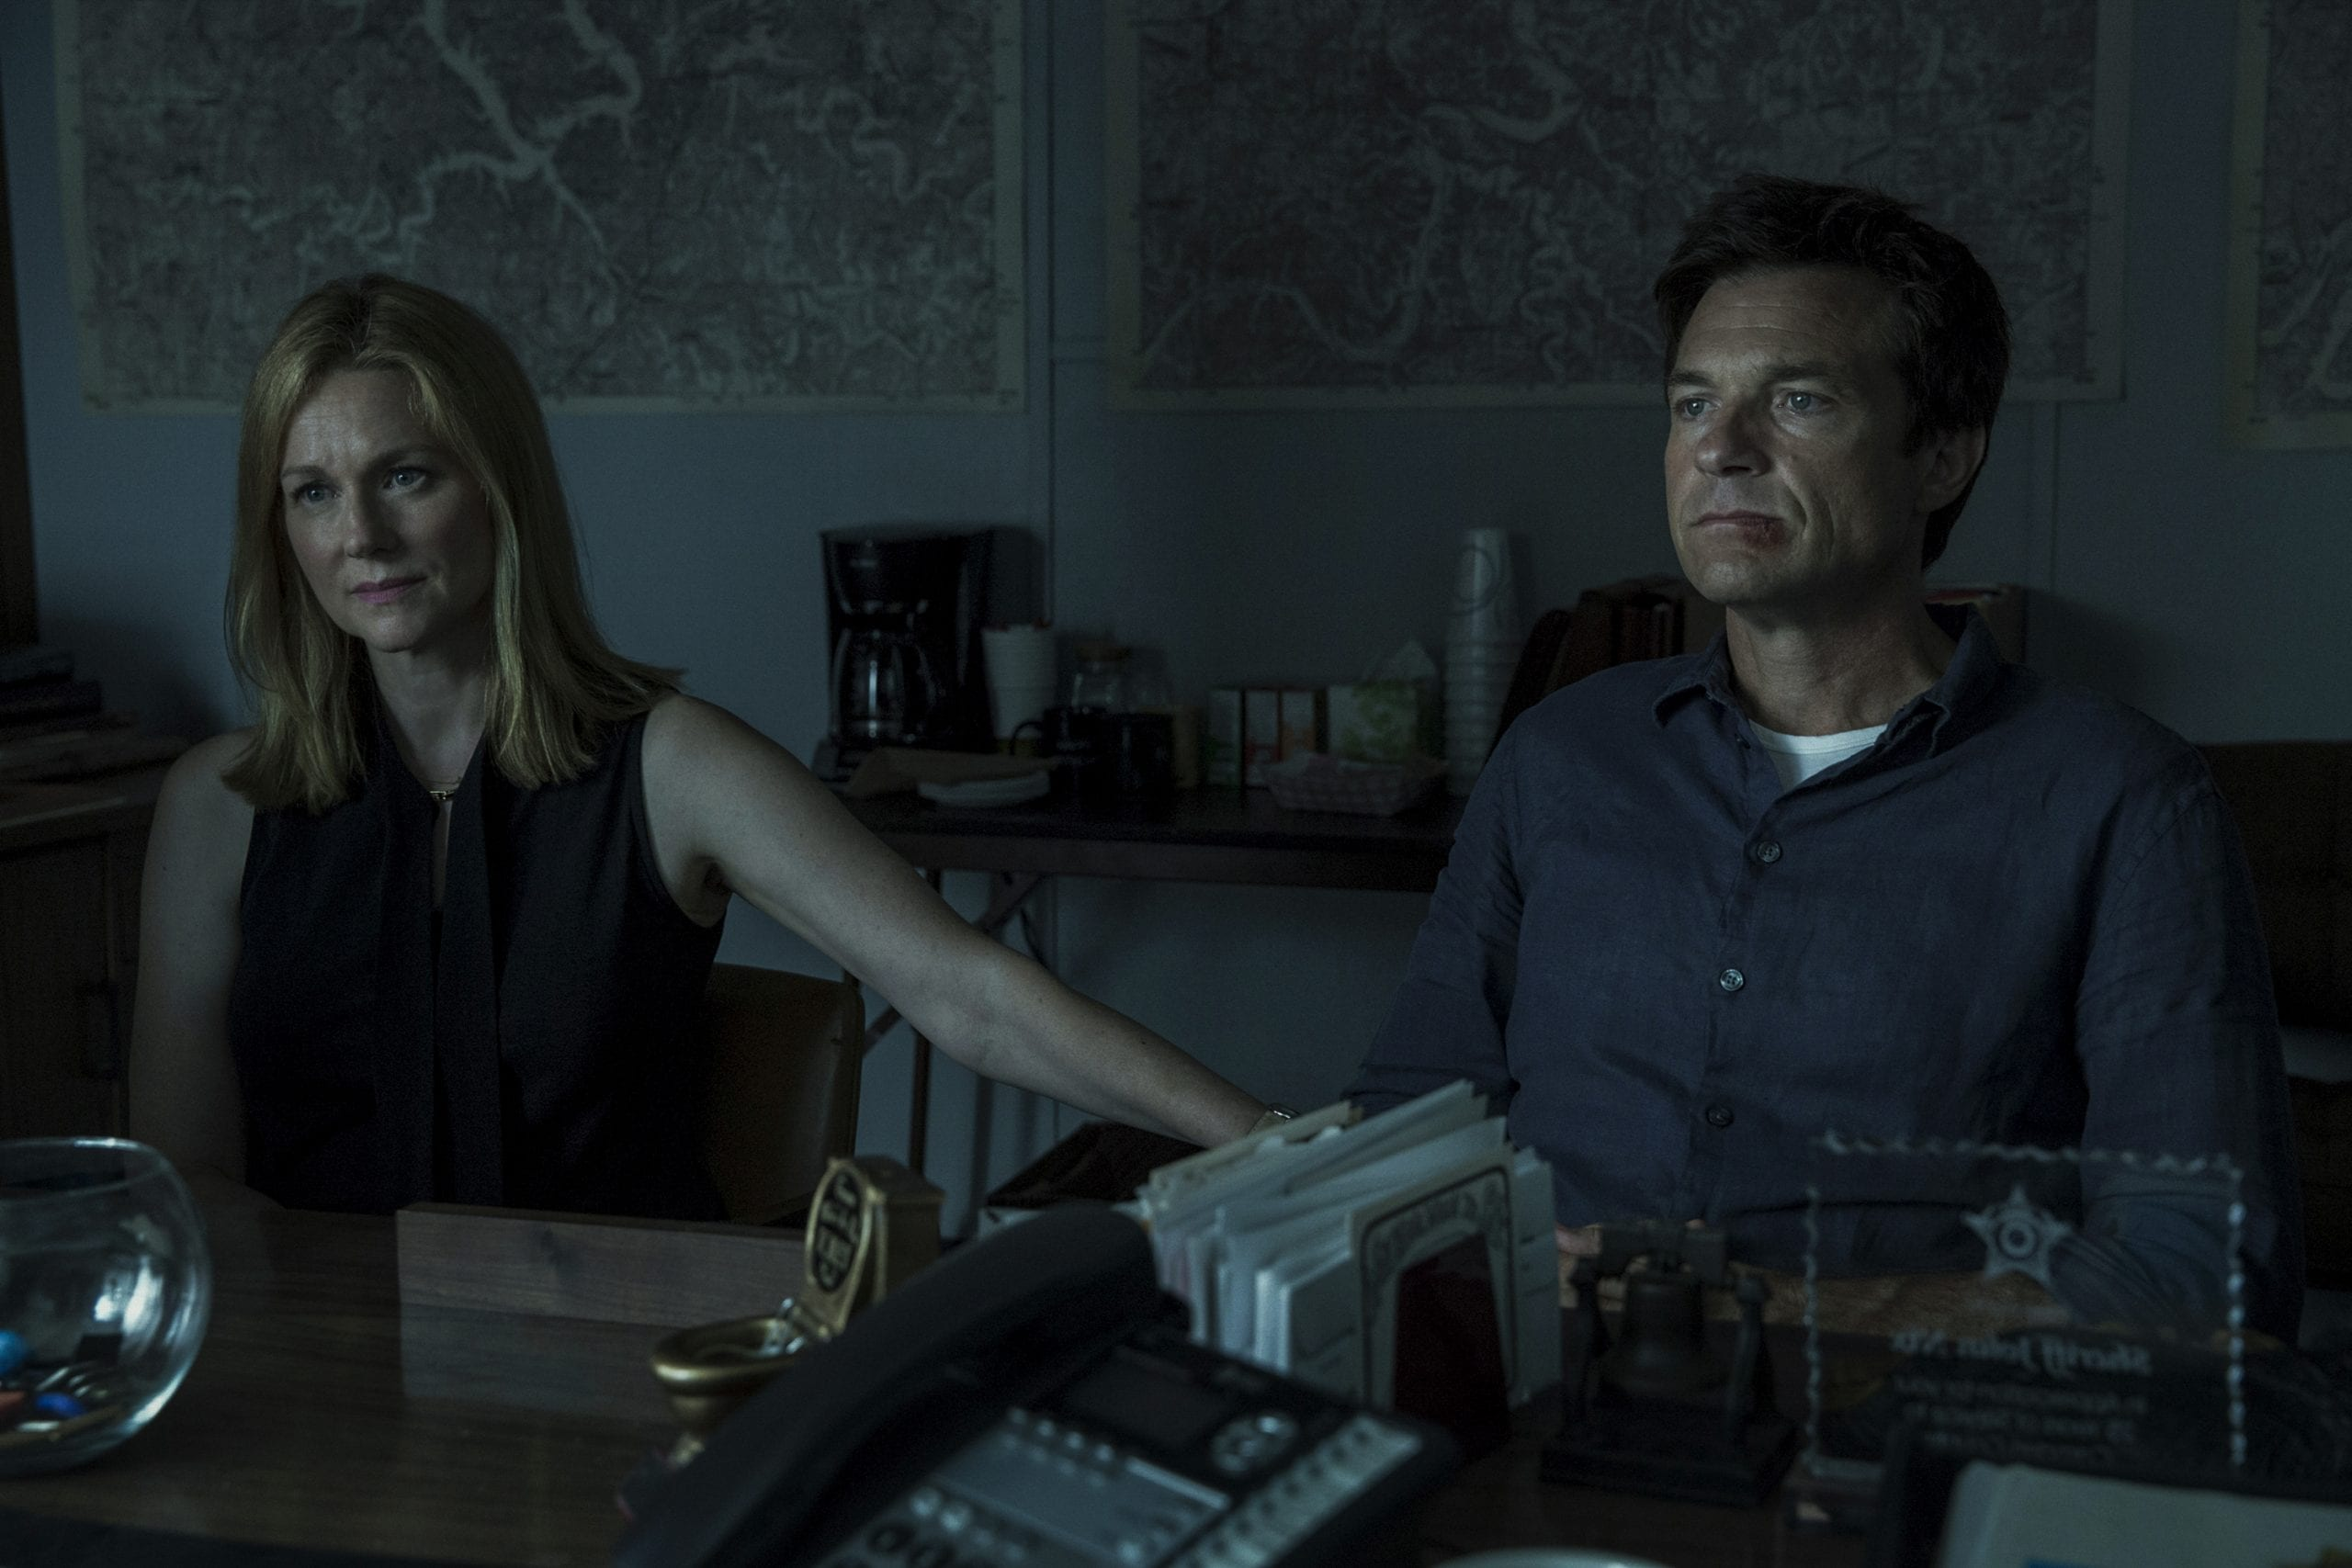 Wendy Byrde (Laura Linney) and Marty Byrde (Jason Bateman) in Ozark season 1 episode 2 Photo credit: Jackson Davis/Netflix